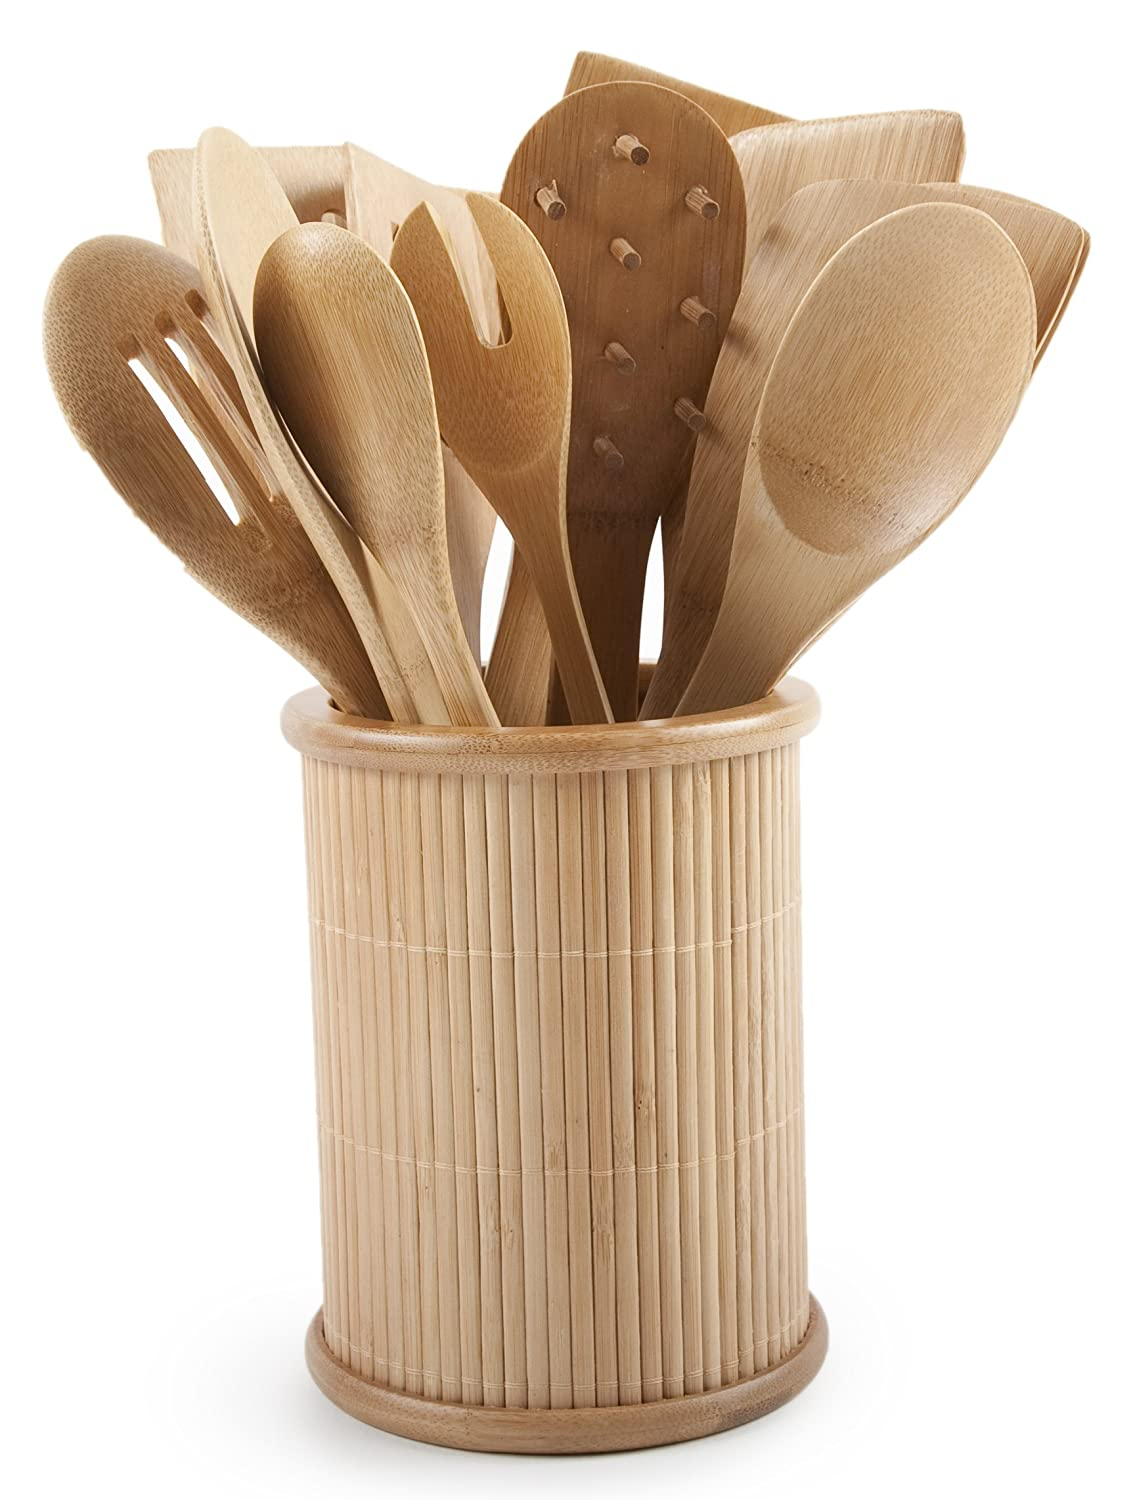 Exceptional Amazon.com: Core Bamboo Classic 14 Piece Kitchen Utensil Set, Natural:  Kitchen Tool Sets: Kitchen U0026 Dining